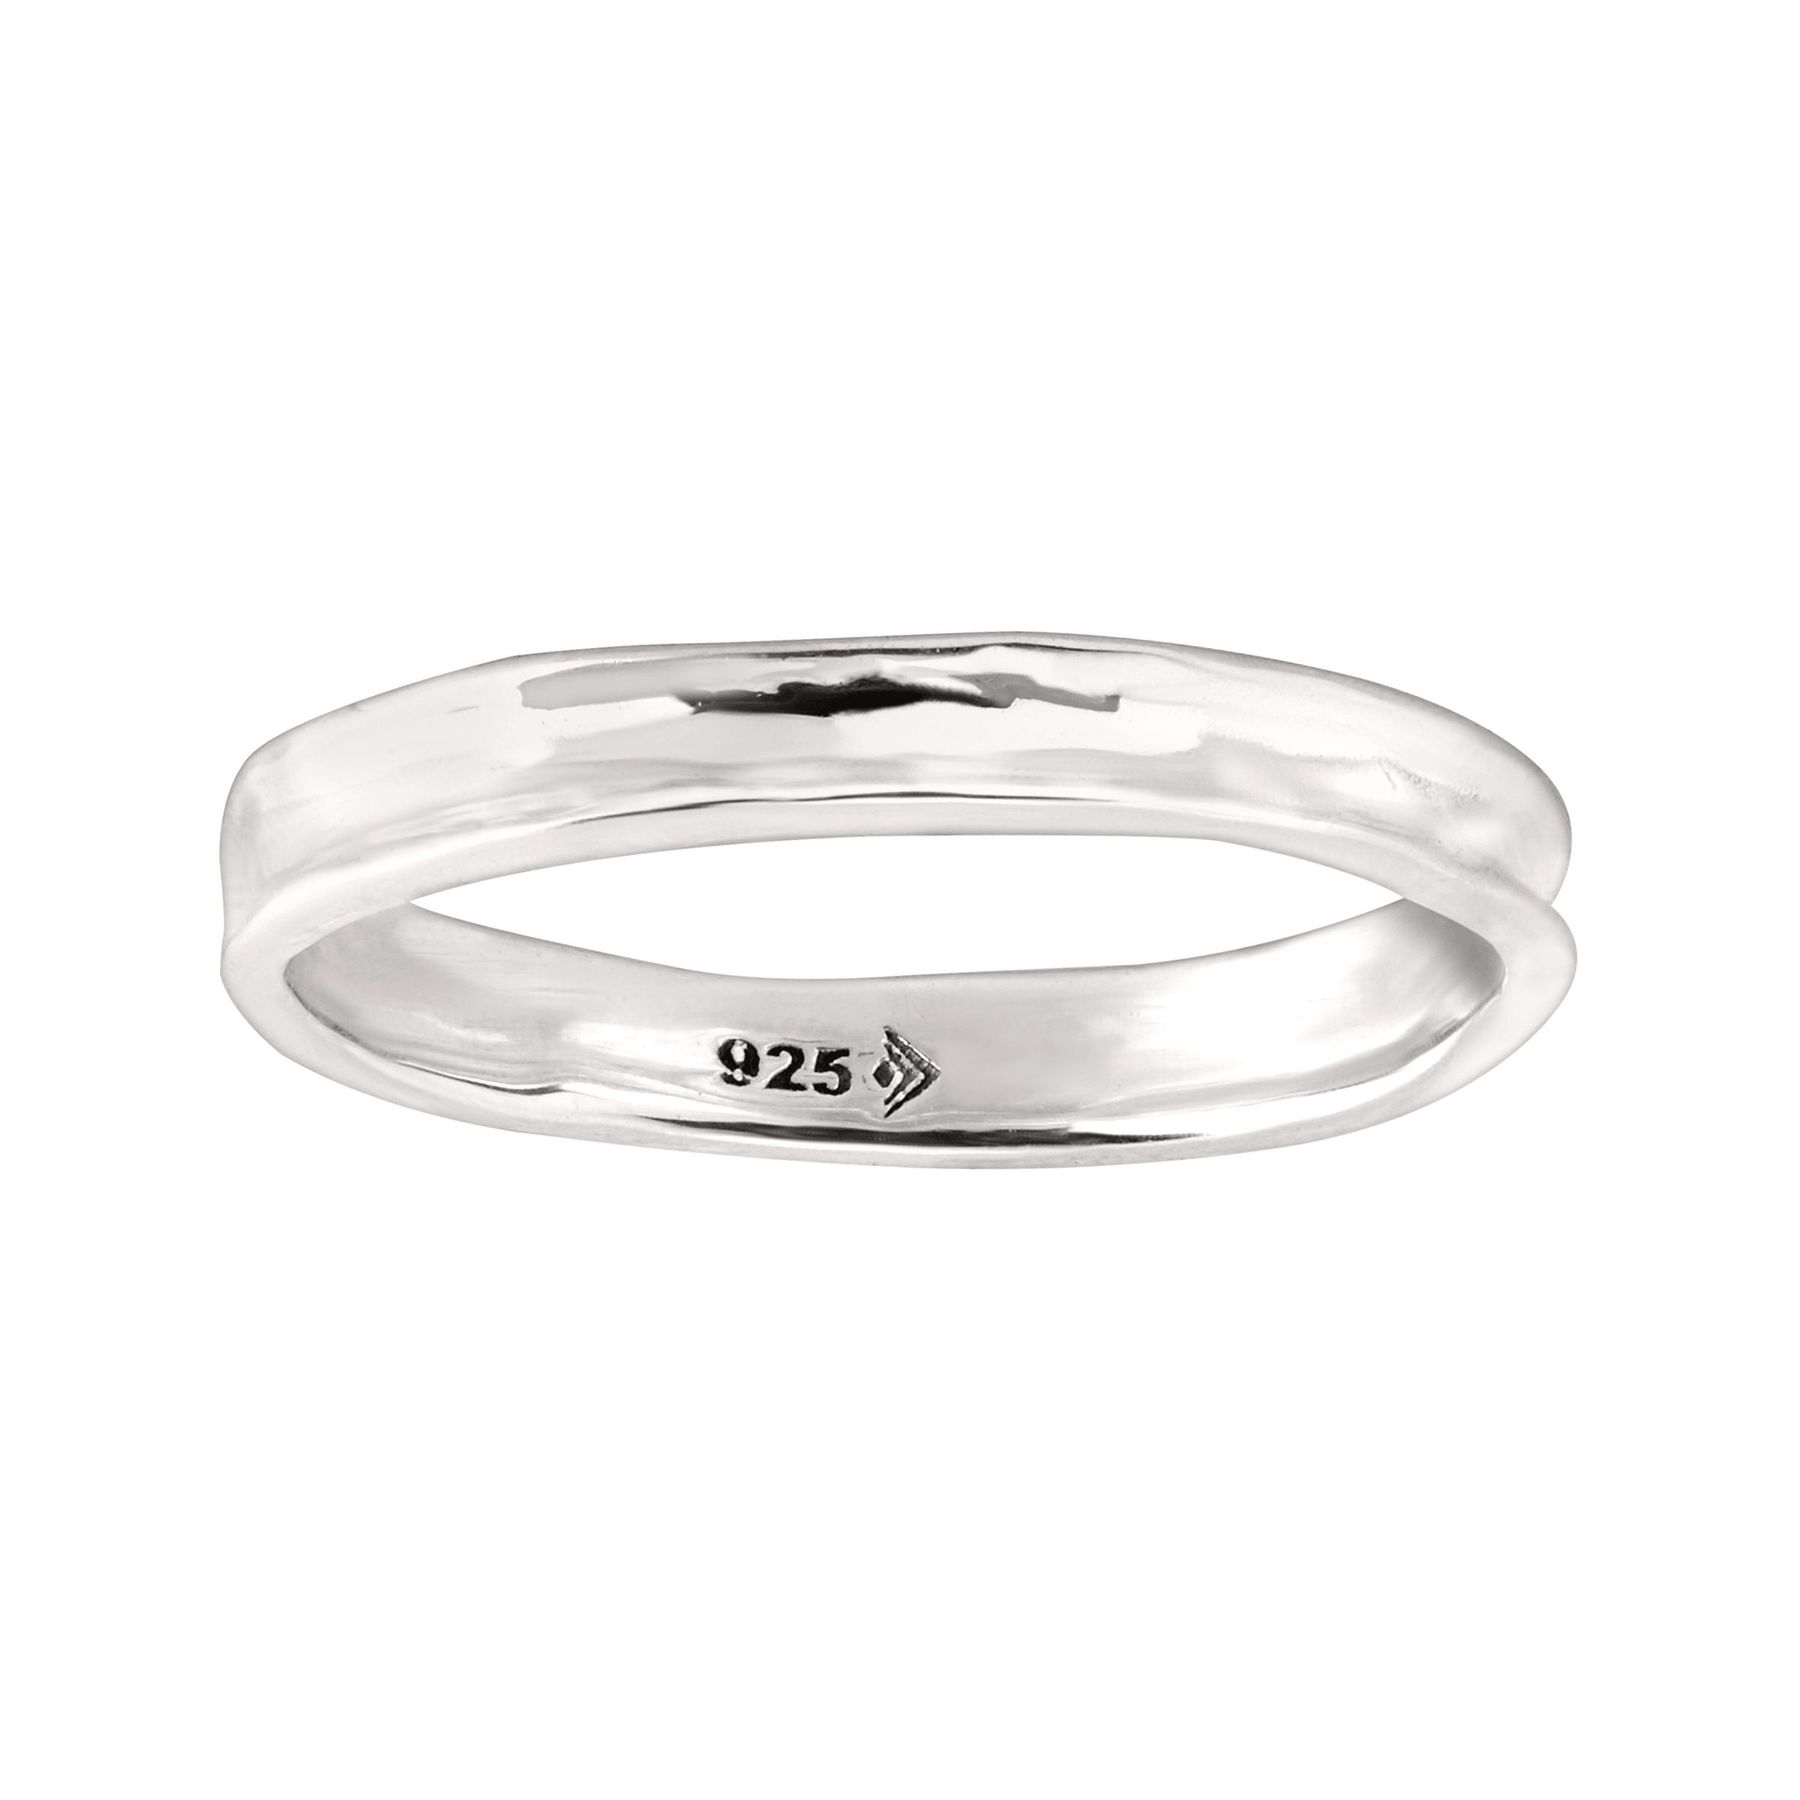 925 Solid Sterling Silver Stacking Ring Band  Size 6 7